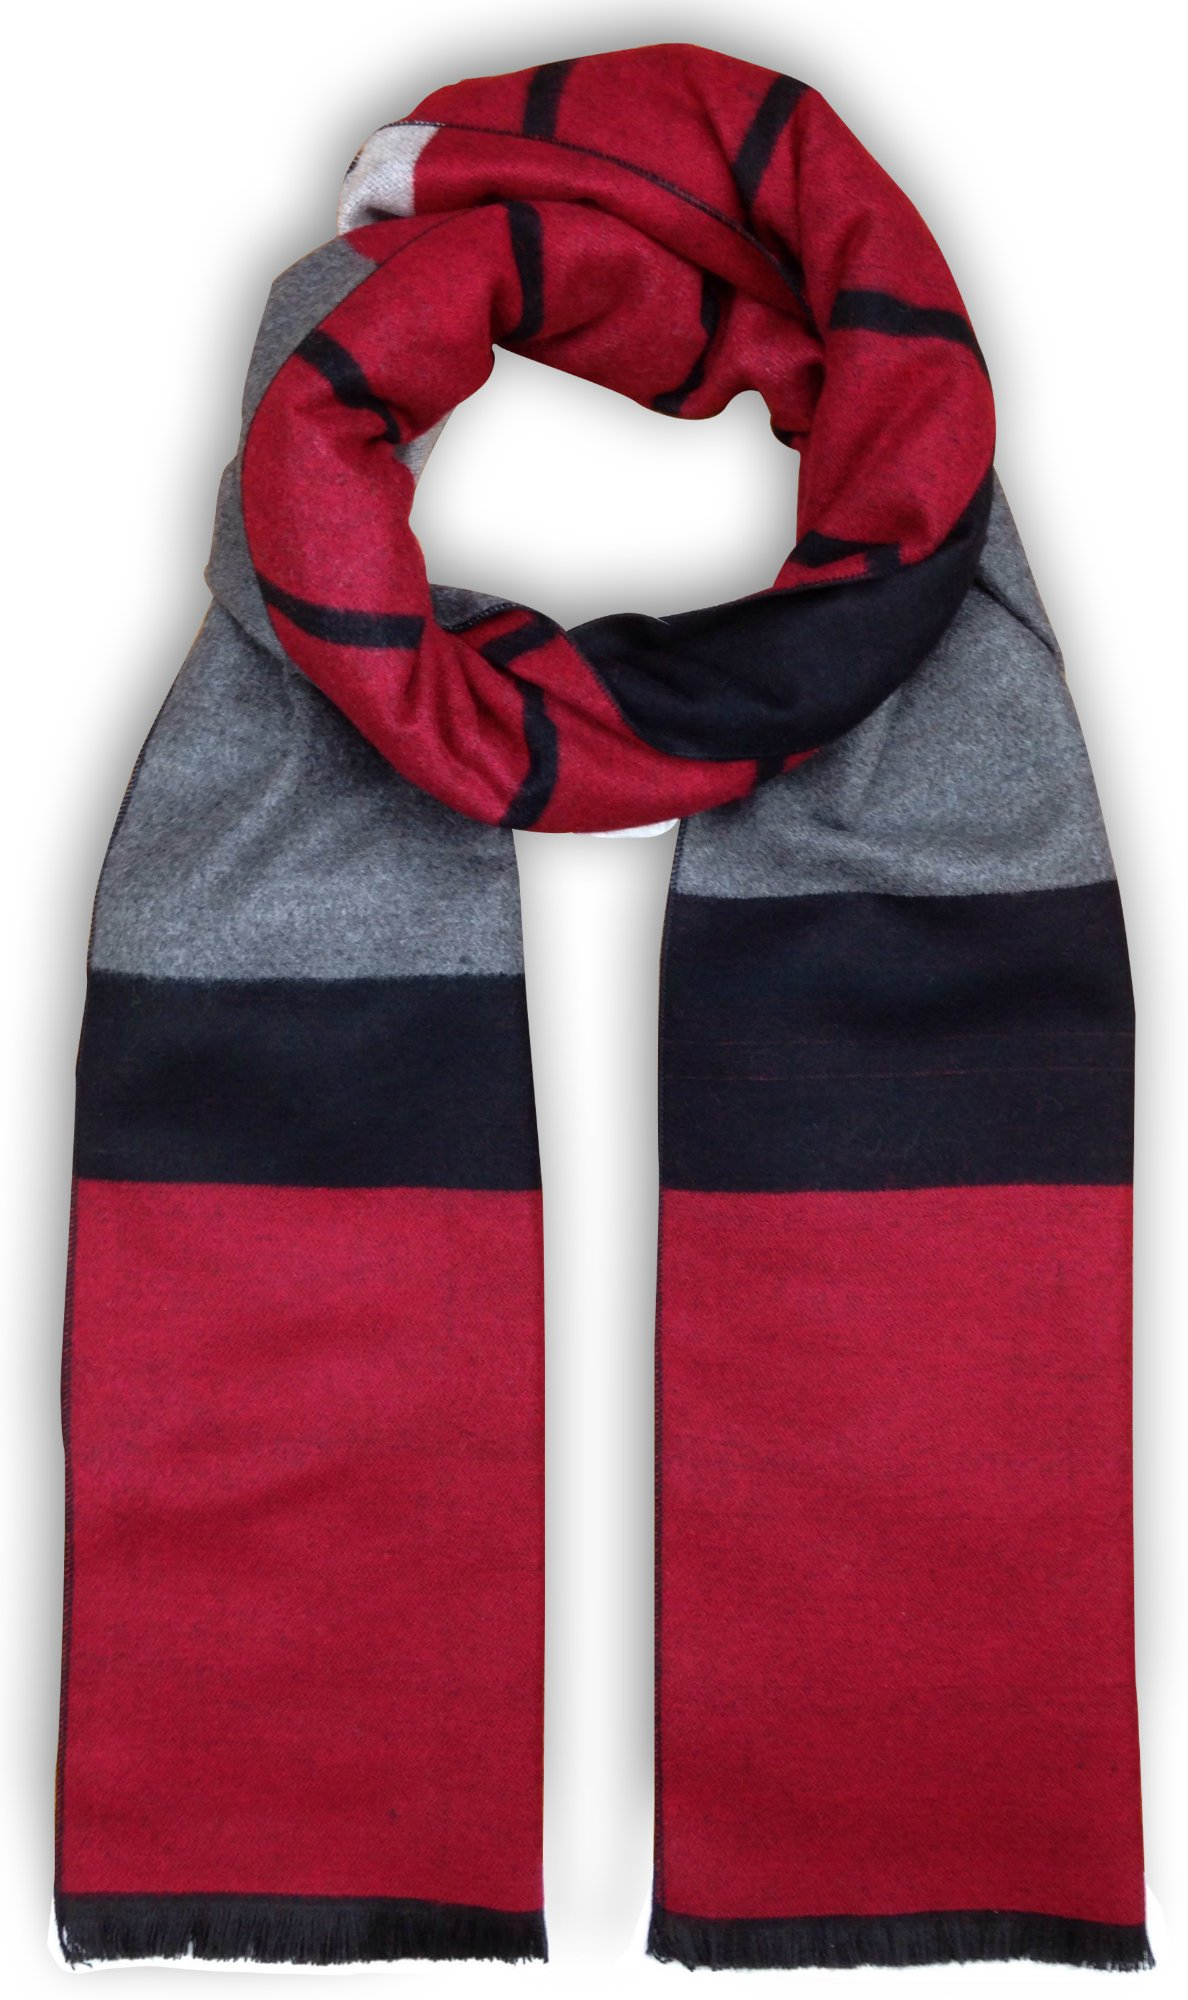 Bleu Nero Luxurious Winter Scarf for Men and Women – Large Selection of Unique Design Scarves – Super Soft Premium Cashmere Feel (Red/Black/Grey Two-sided Stripes)